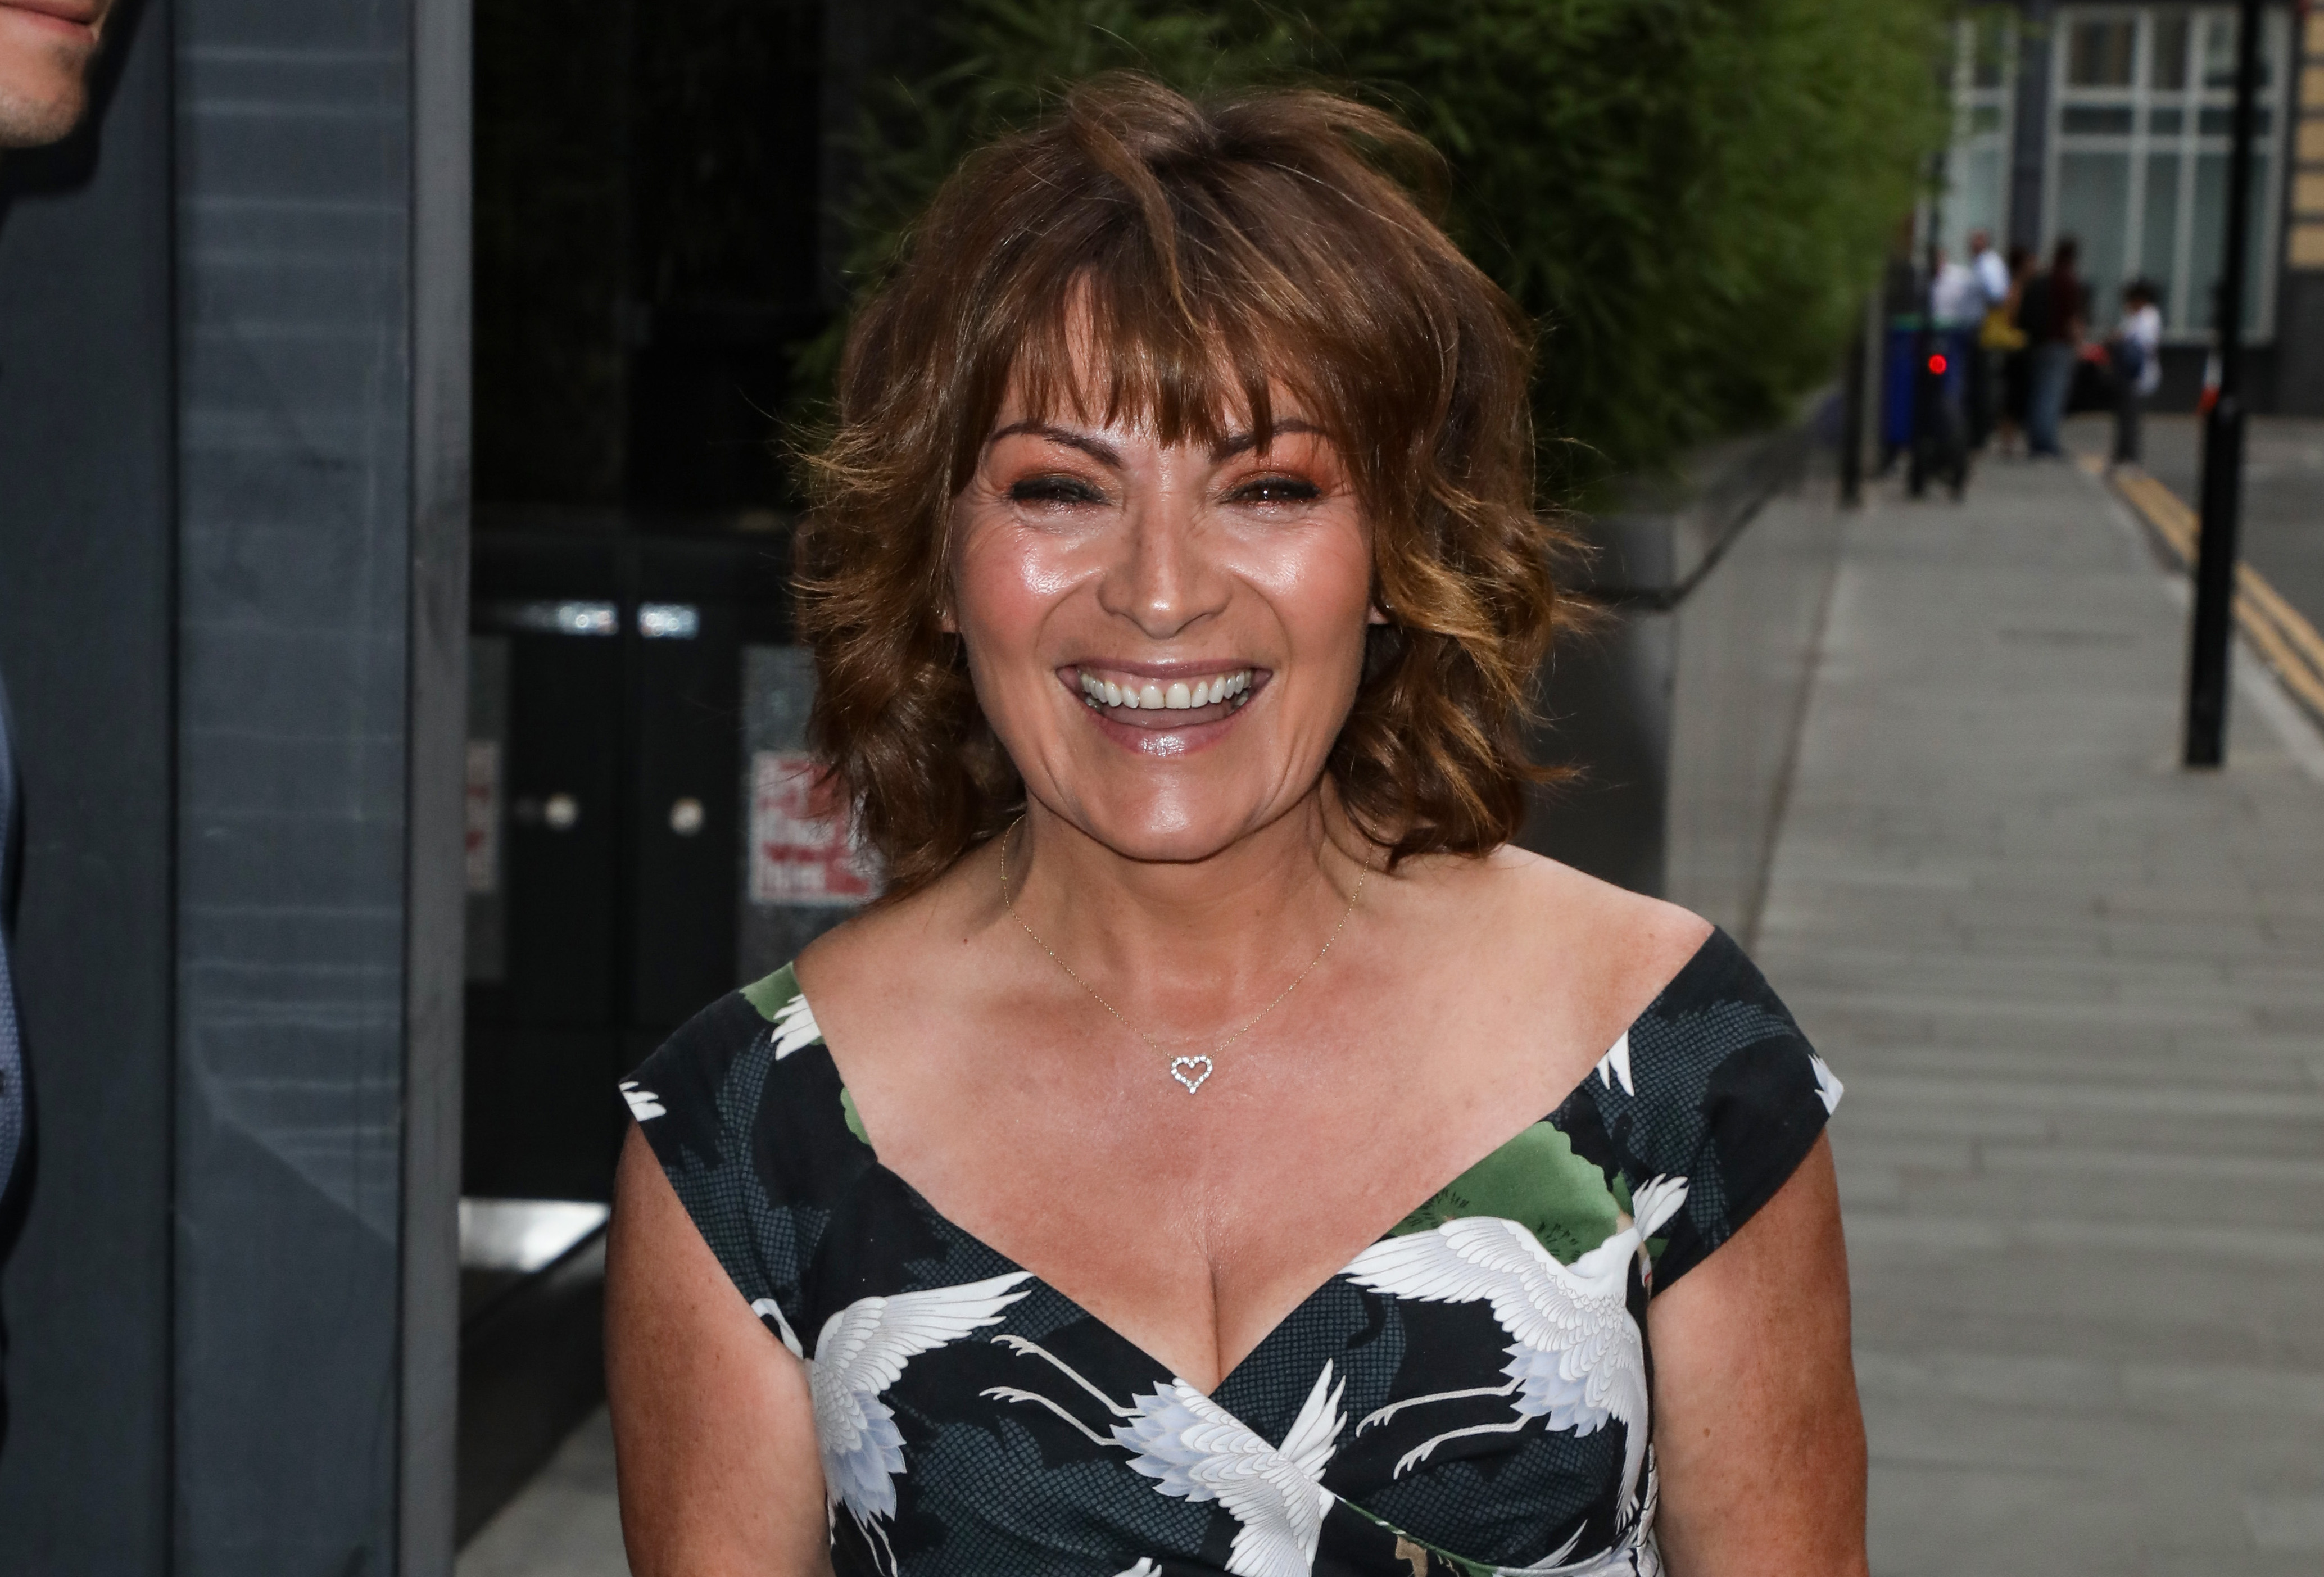 Piers Morgan has 'special surprise' for Lorraine Kelly as she celebrates 35 years in TV